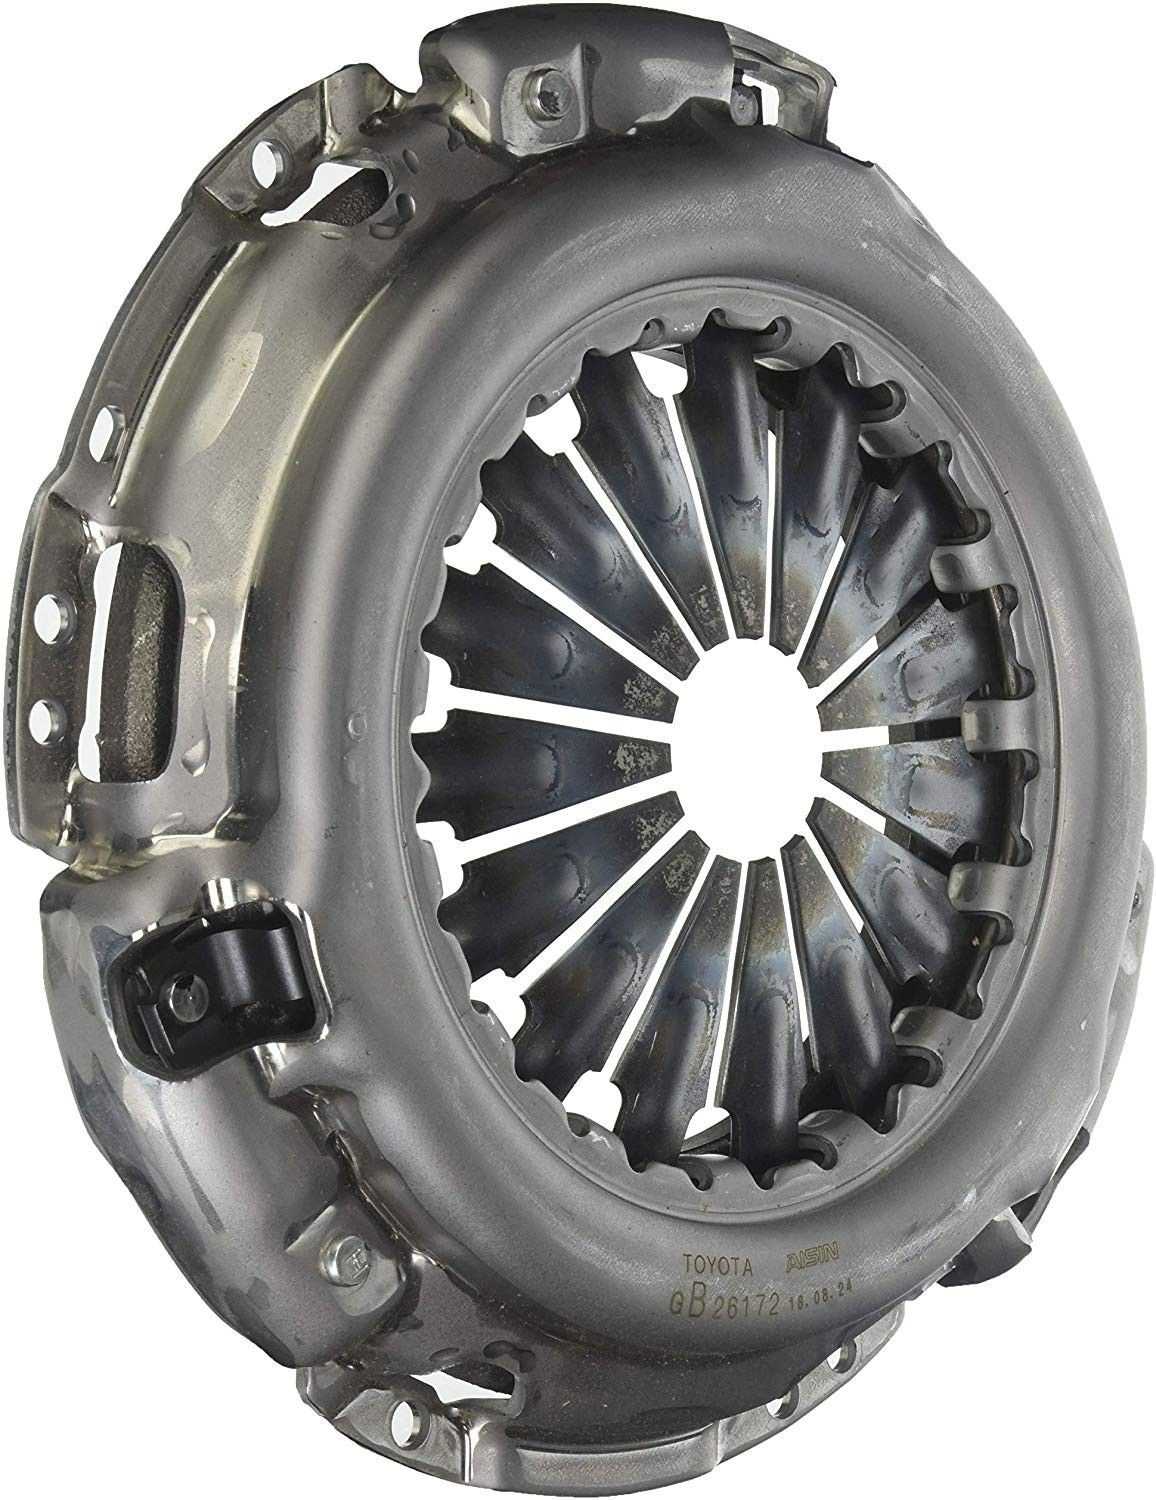 Luk Clutch Pressure Plate For Nissan Cabstar 9.2mm thickness 240 - 1240342100